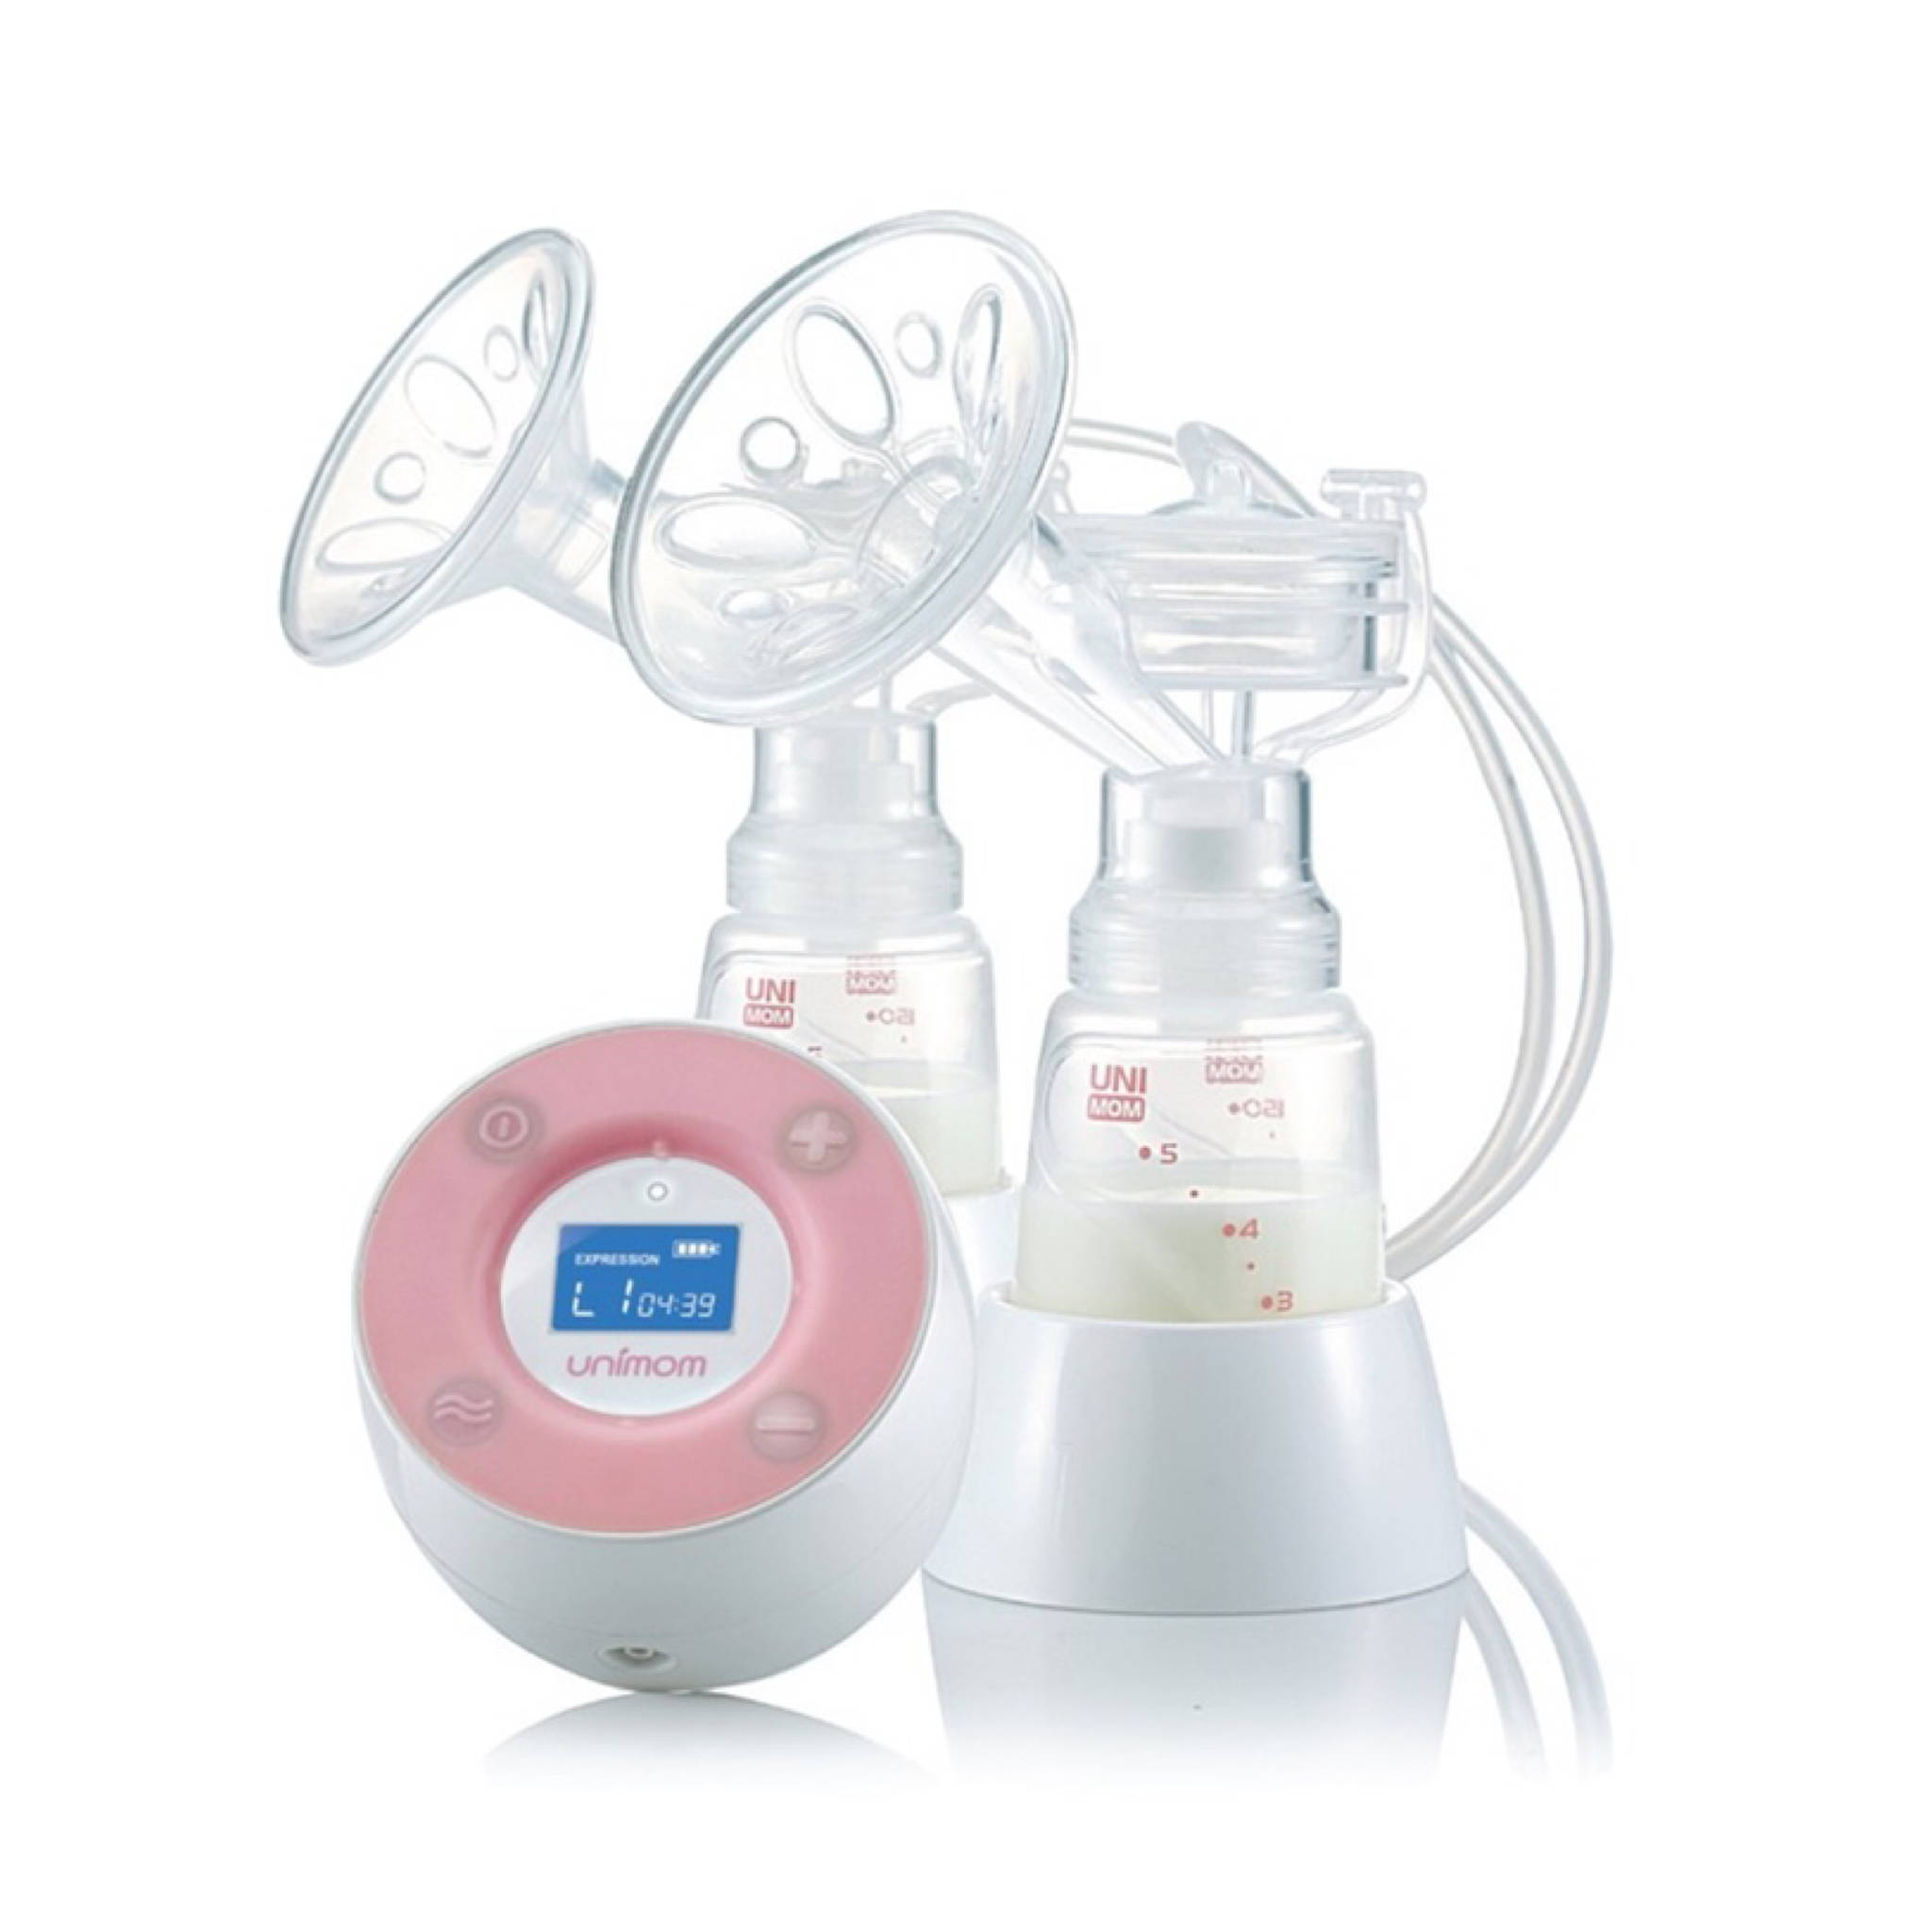 Steamer - Assembly and Use of Minuet Double Electric Breast Pump